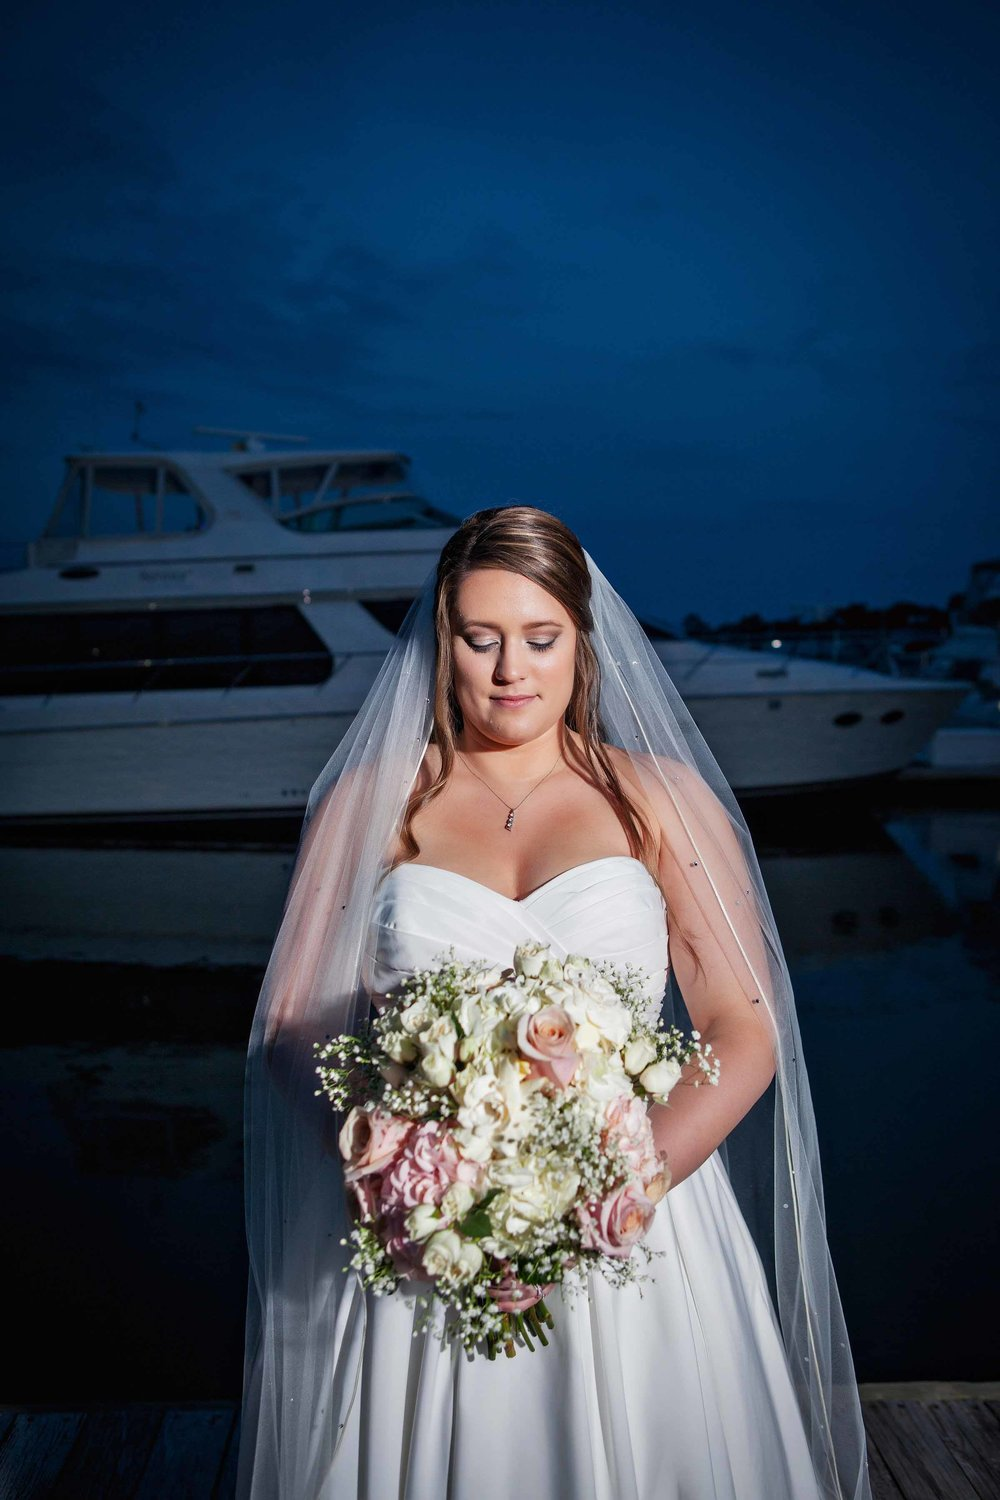 Marina Shores Wedding Photograph - Virginia Beach - Sarah And Matthew - by John Cachero for Ross Costanza Photography